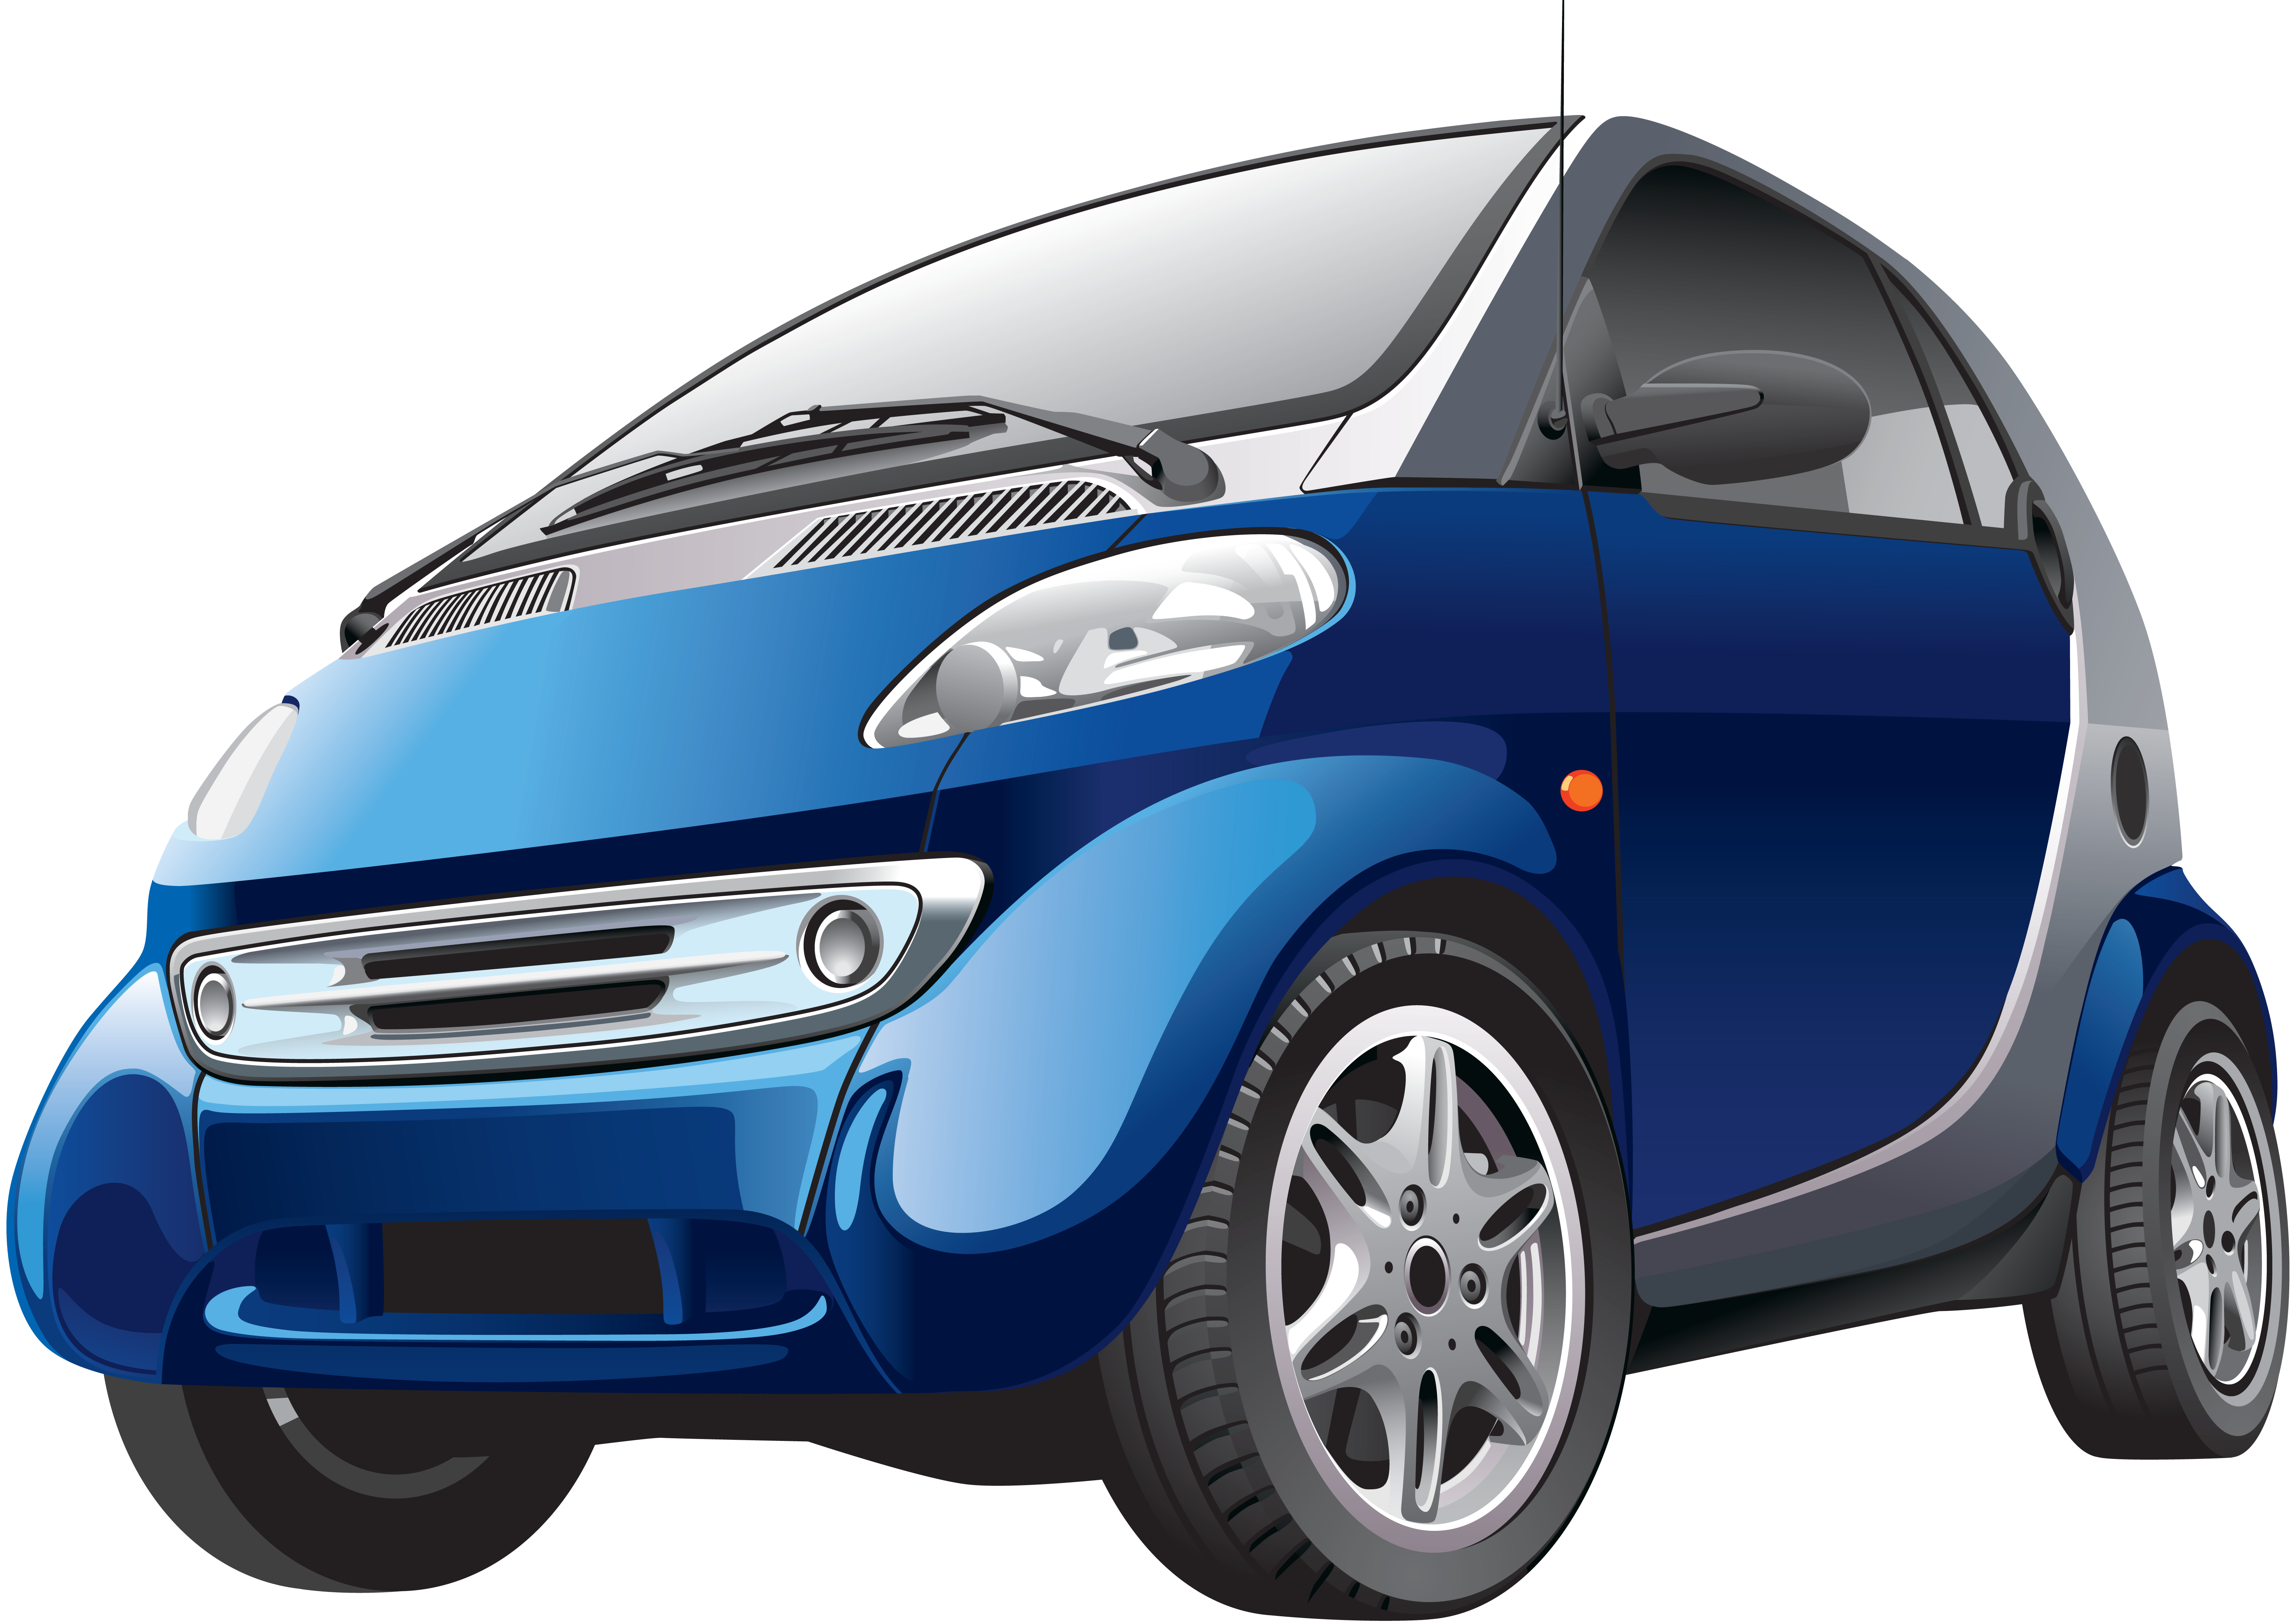 Smart car clipart clip freeuse Blue Smart car PNG Clipart - Download free images in PNG clip freeuse